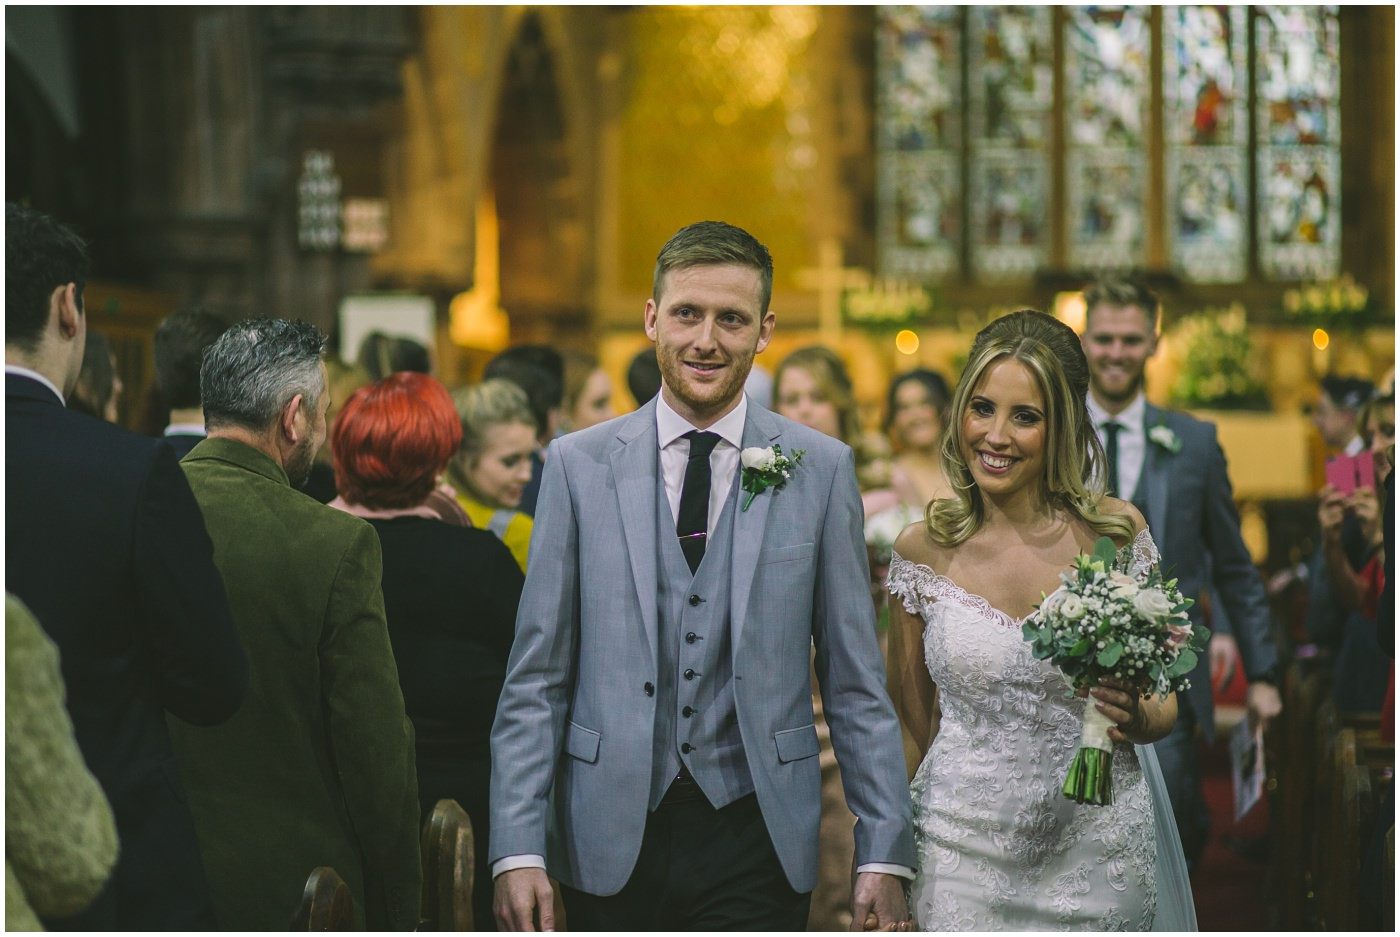 bride and groom smile as they exit the church as newly weds